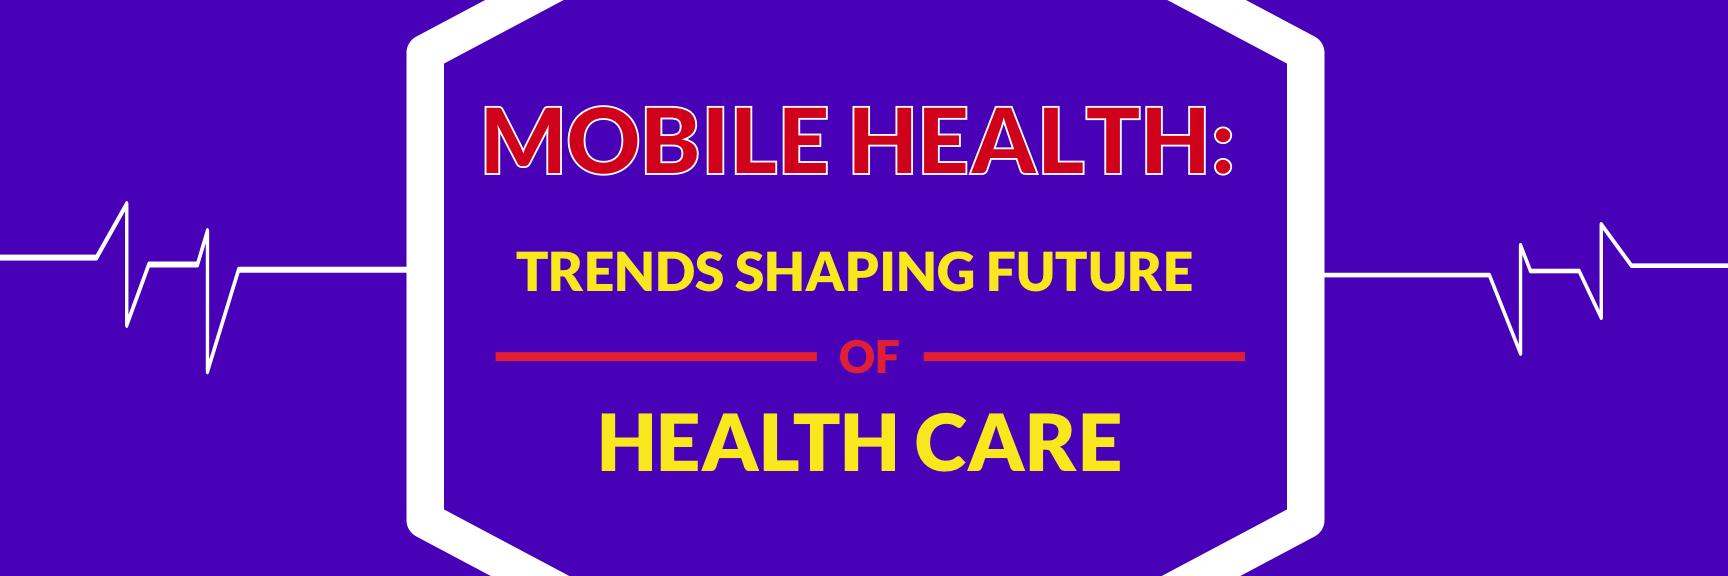 mobile health to connected health: trends shaping future of healthcare